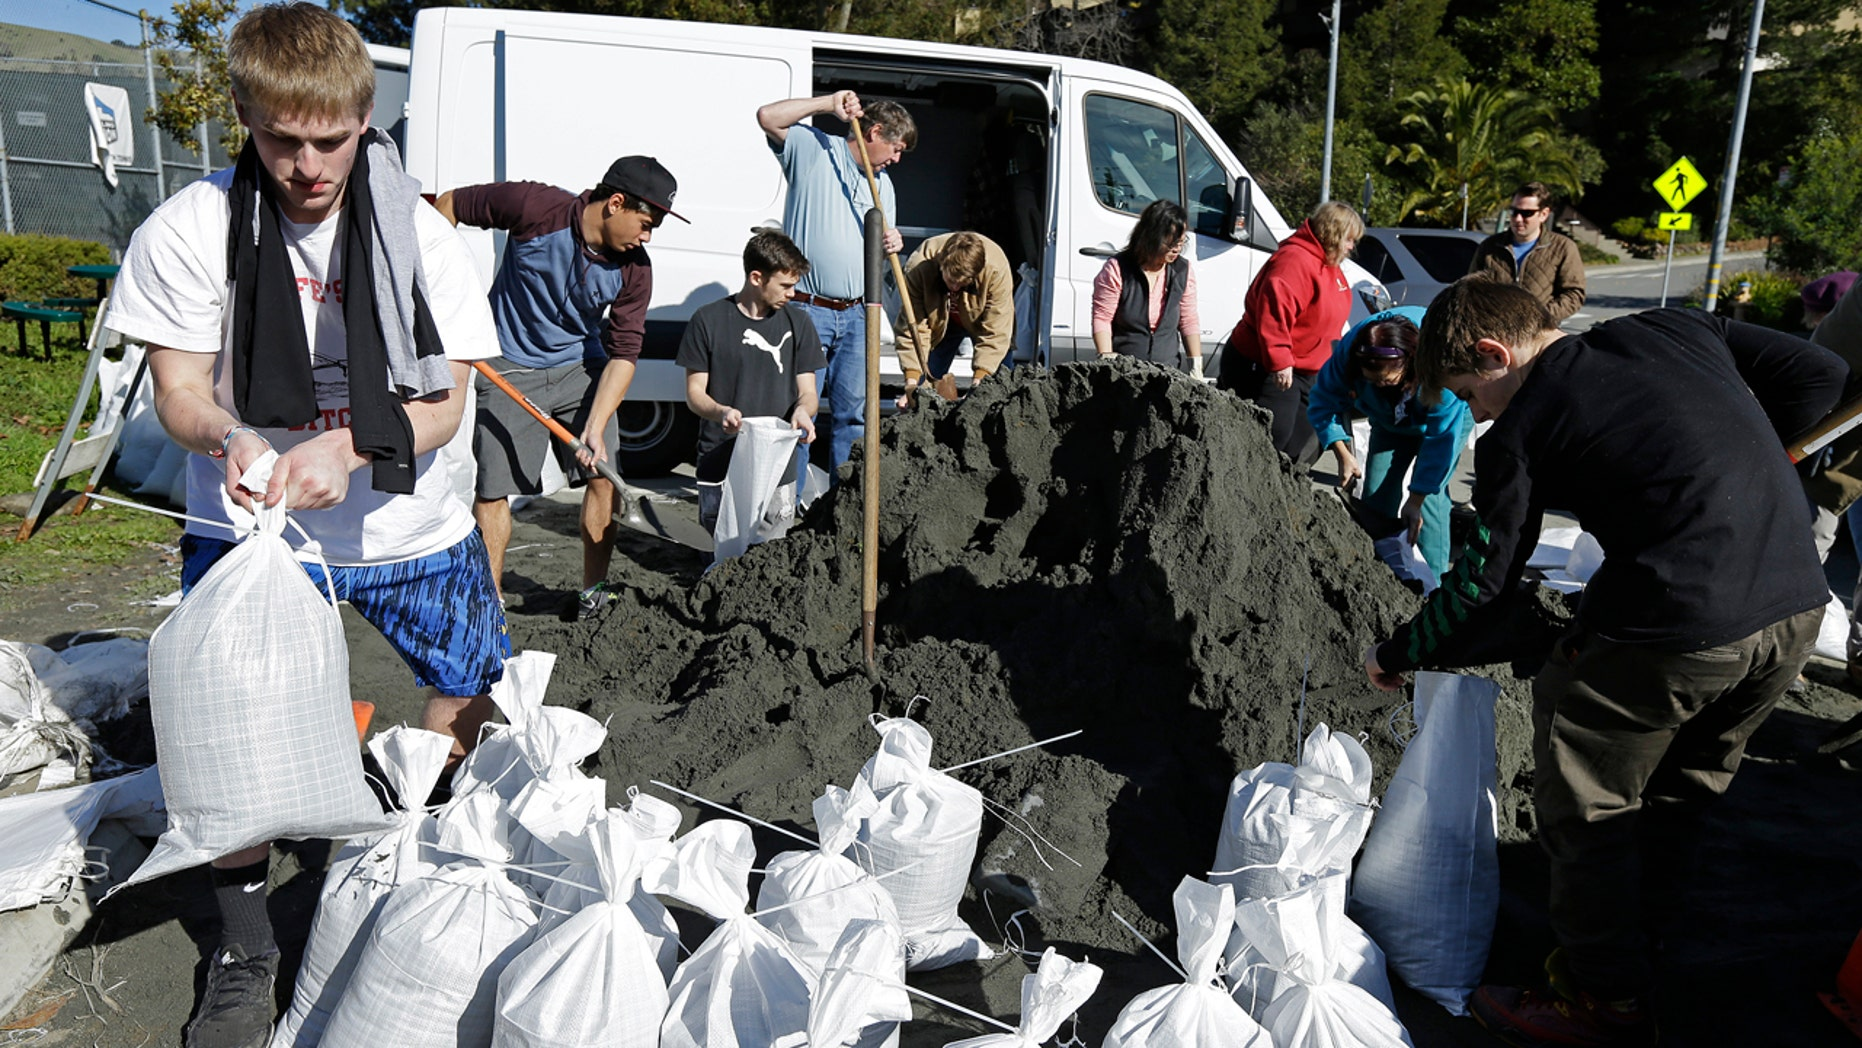 People load sand bags in preparation for a large storm on Friday, Jan. 6, 2017, in San Anselmo, Calif.